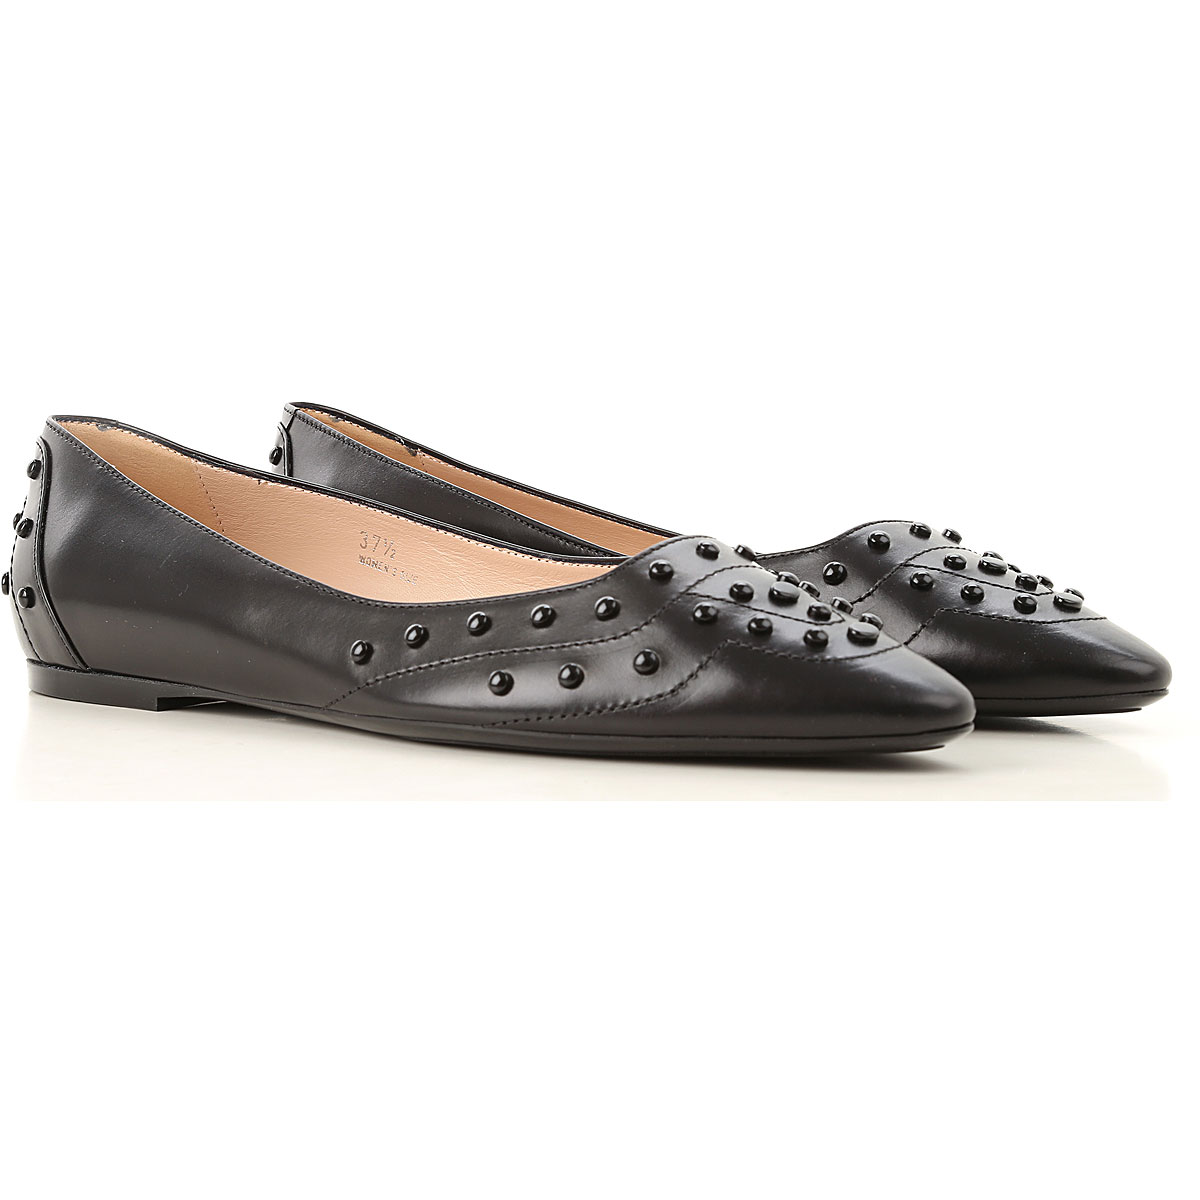 Image of Tods Ballet Flats Ballerina Shoes for Women, Black, Leather, 2017, 10 6